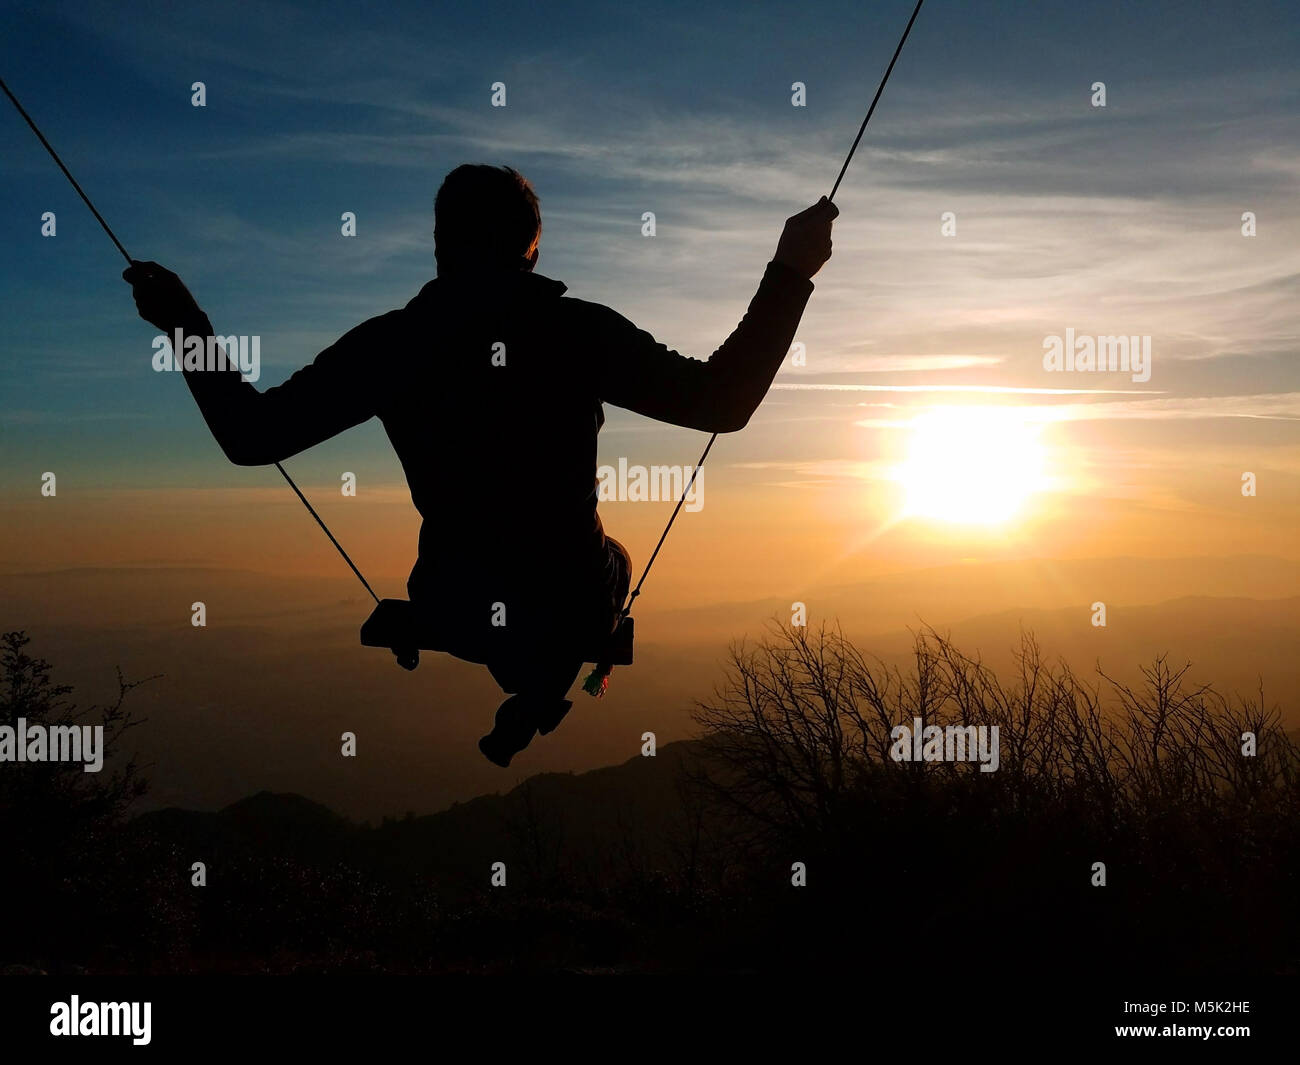 A silhouette of a person swinging towards the sun on the top of Mt. Lowe, Los Angeles, San Gabriel National Forest - Stock Image